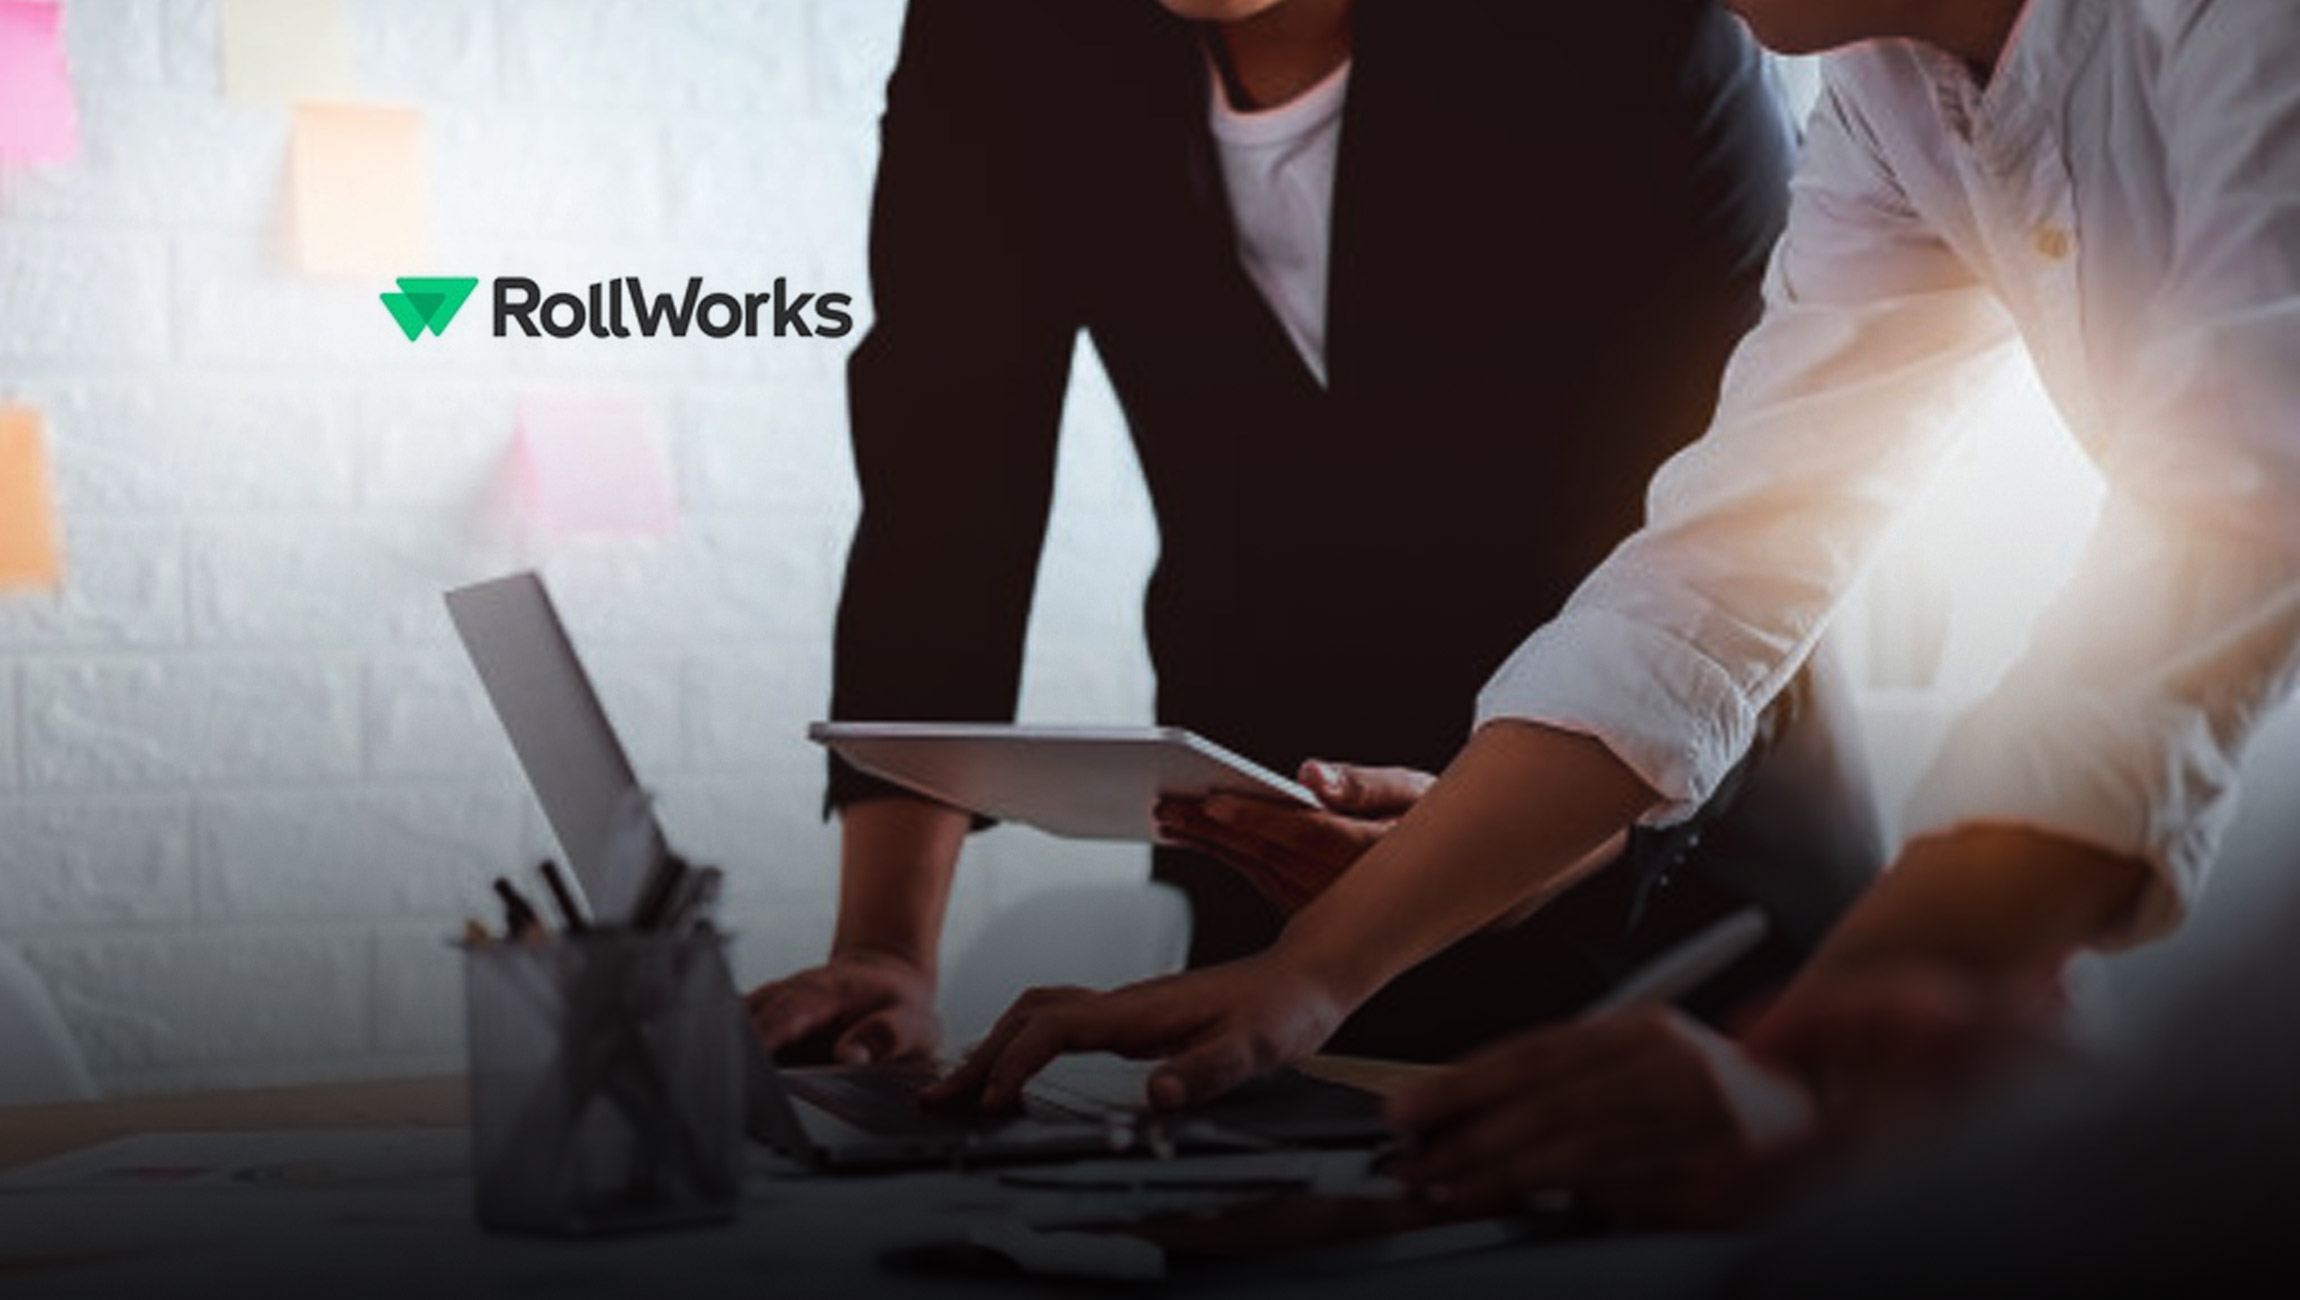 RollWorks Continues its Democratization of ABM with Record Demand from SMBs